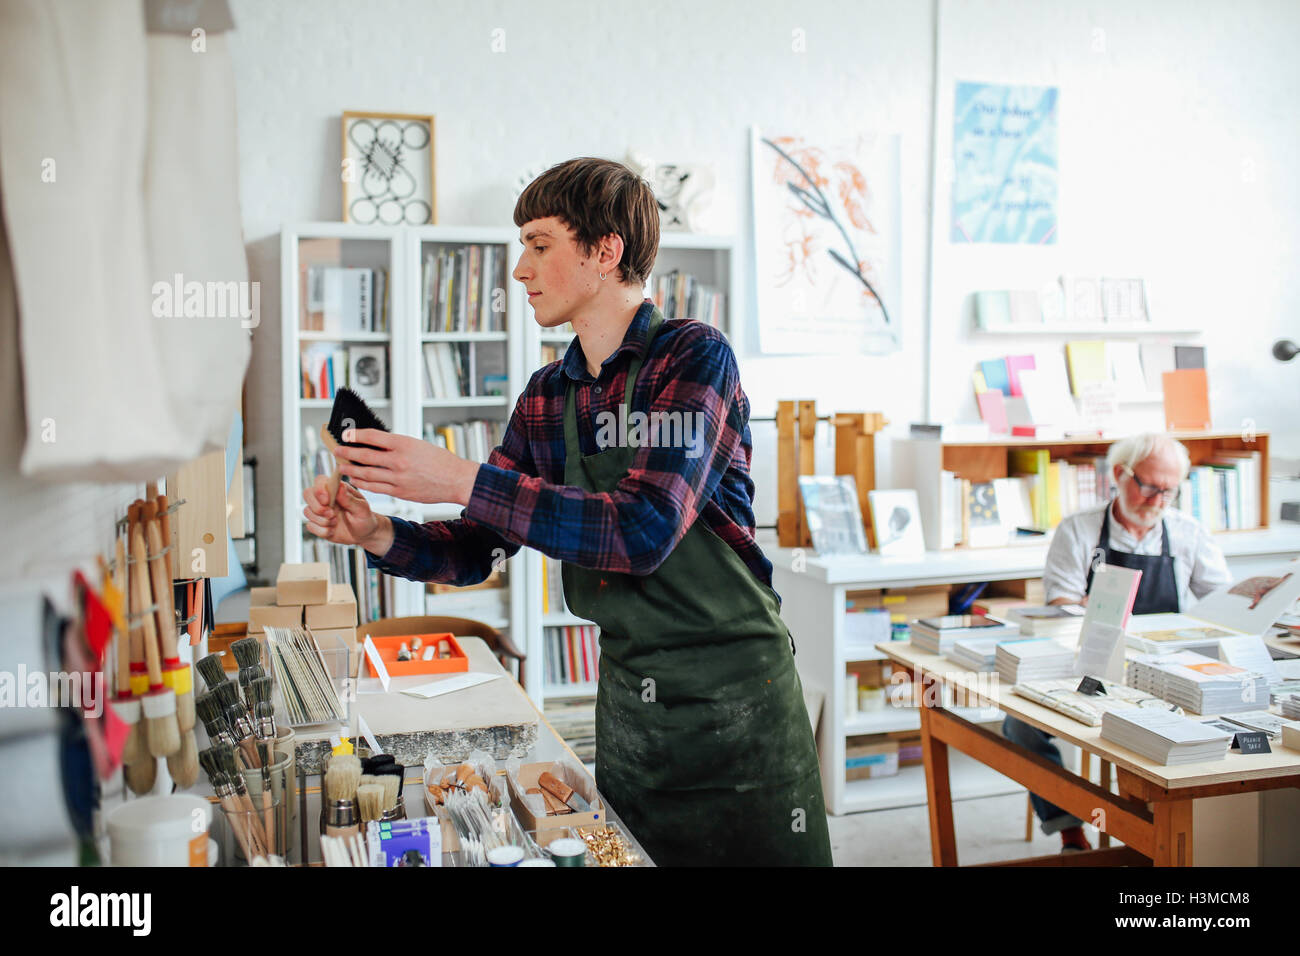 Young craftsman picking up brush and looking at materials in craft shop, with senior man in background - Stock Image